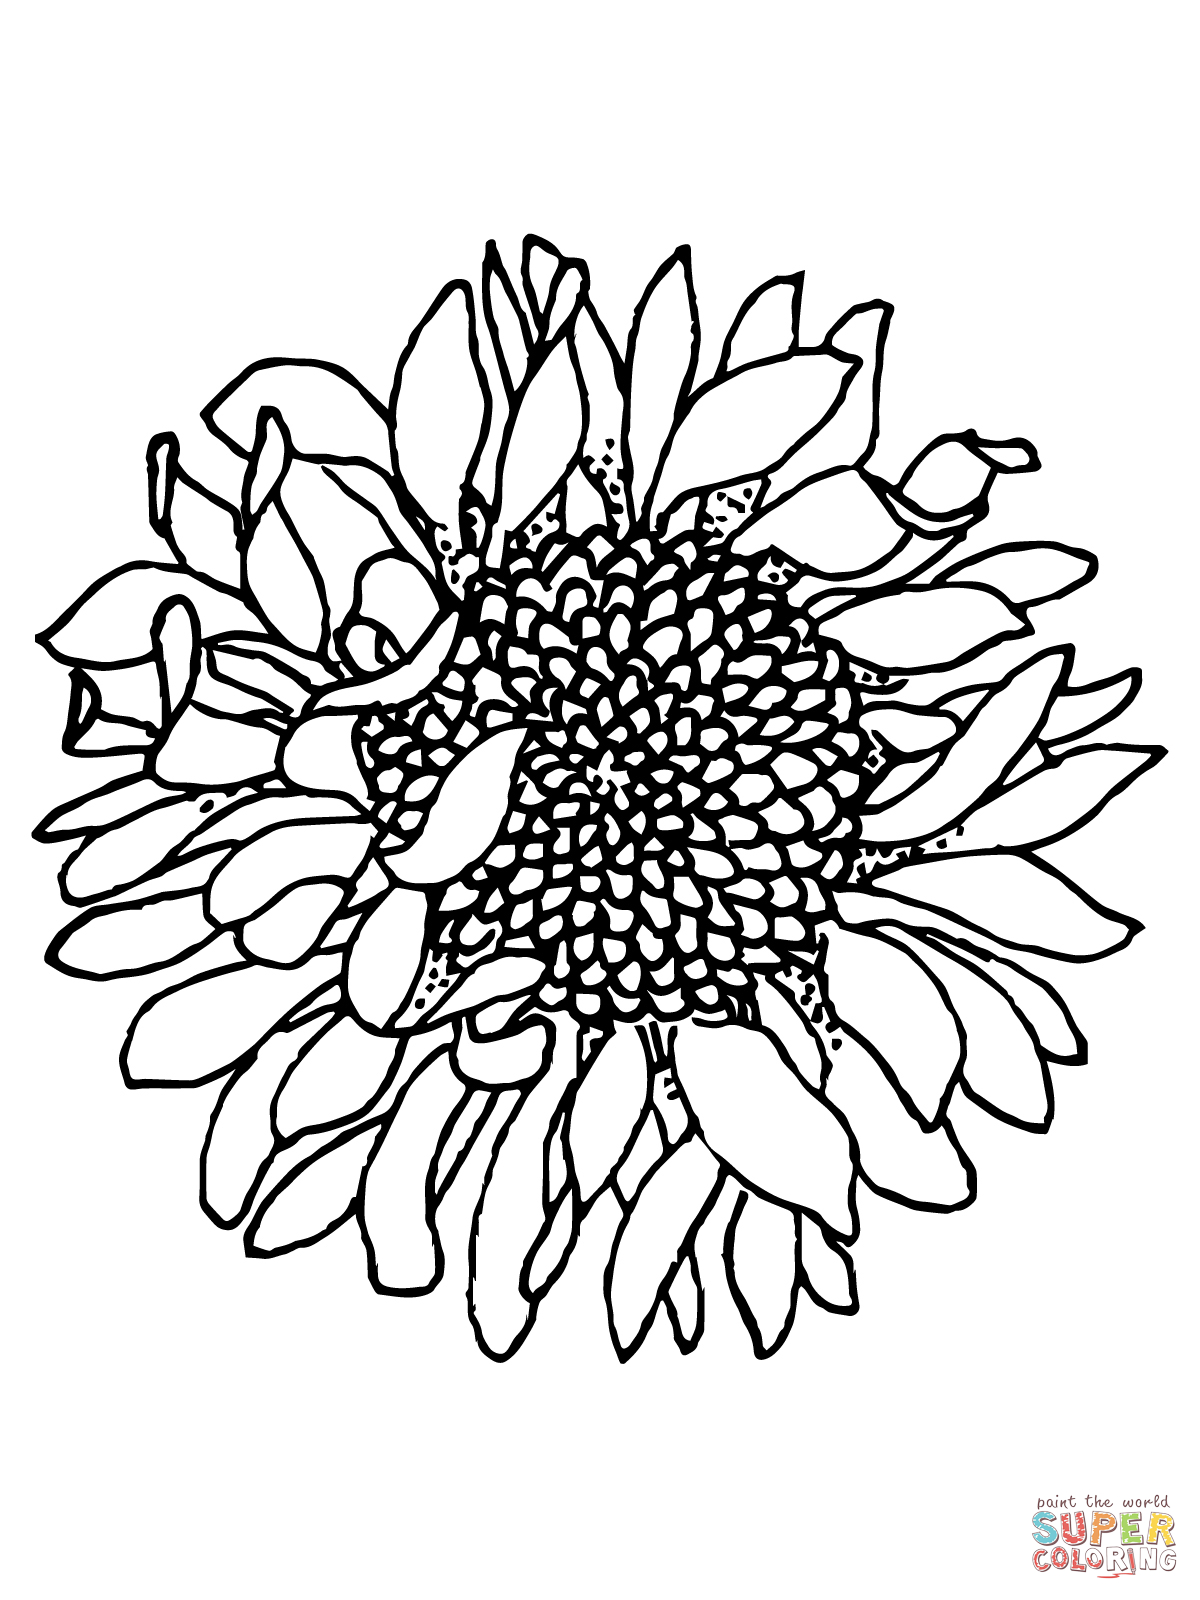 sunflower coloring sheets sunflower drawing simple at getdrawings free download sheets coloring sunflower